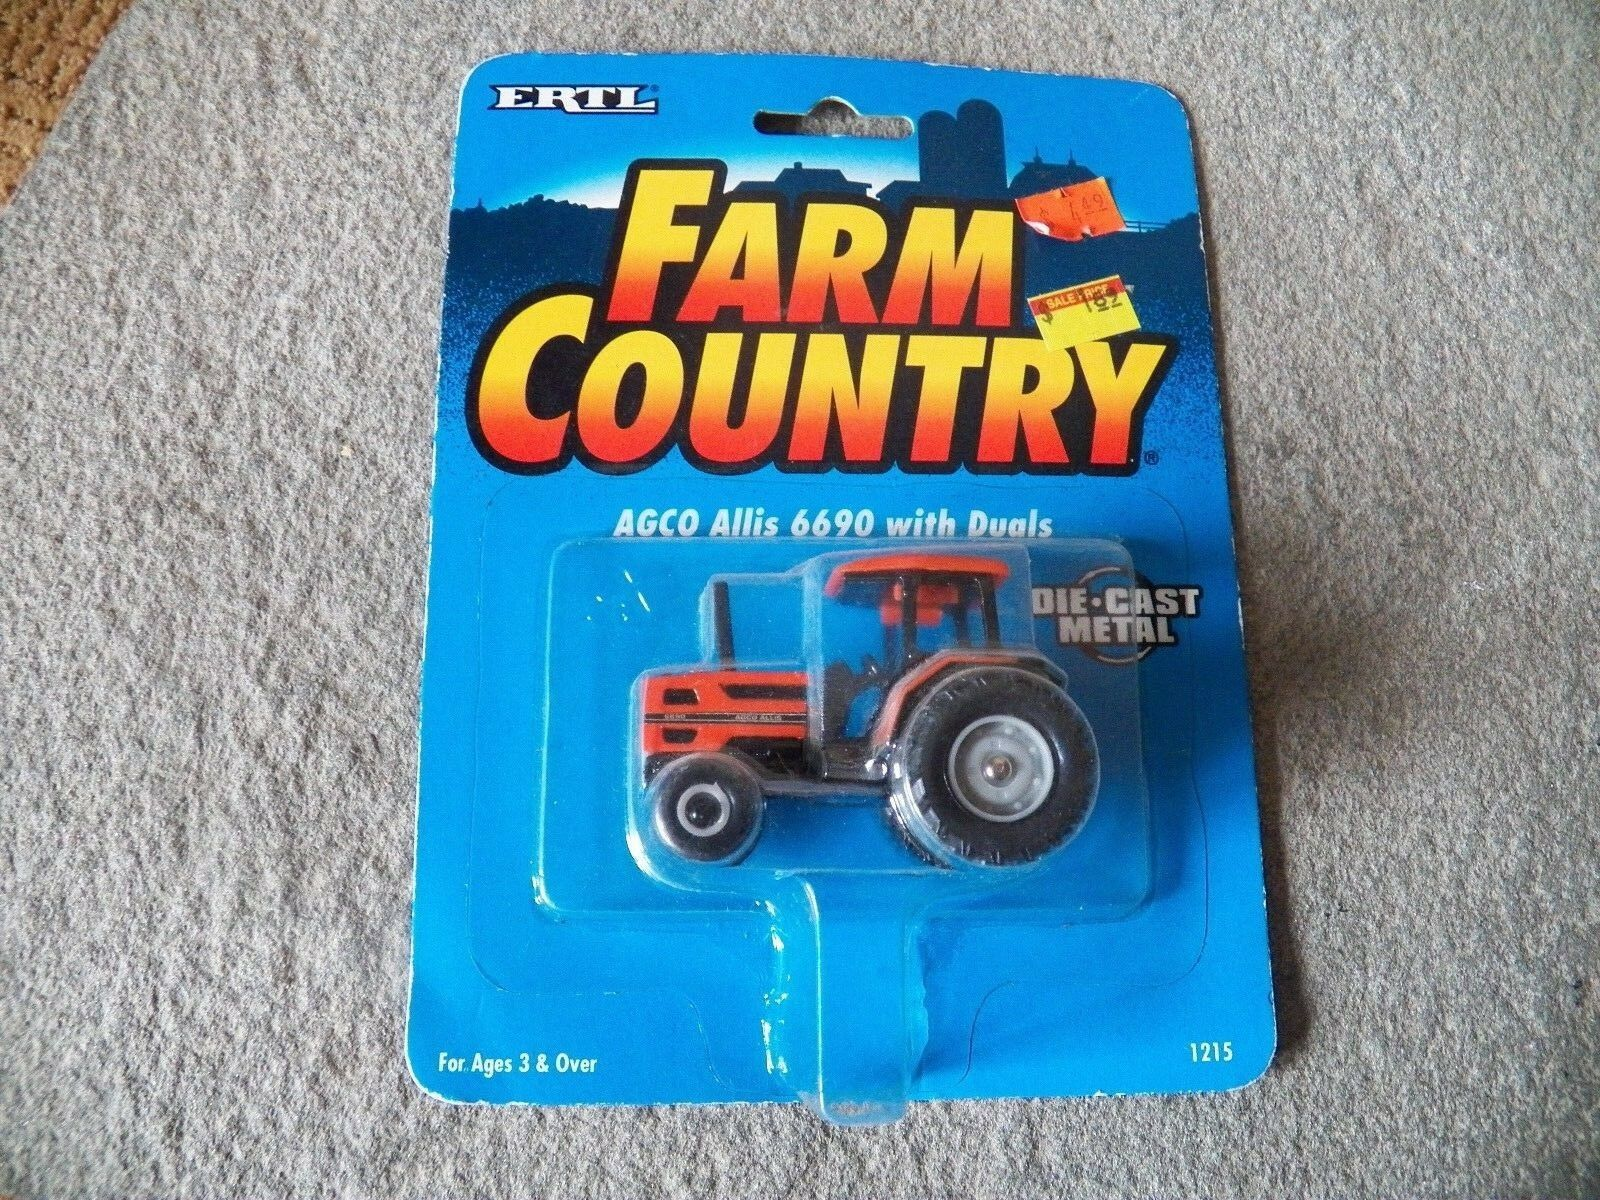 ERTL Farm Country Die cast NEW AGCO Allis 6690 with Duals